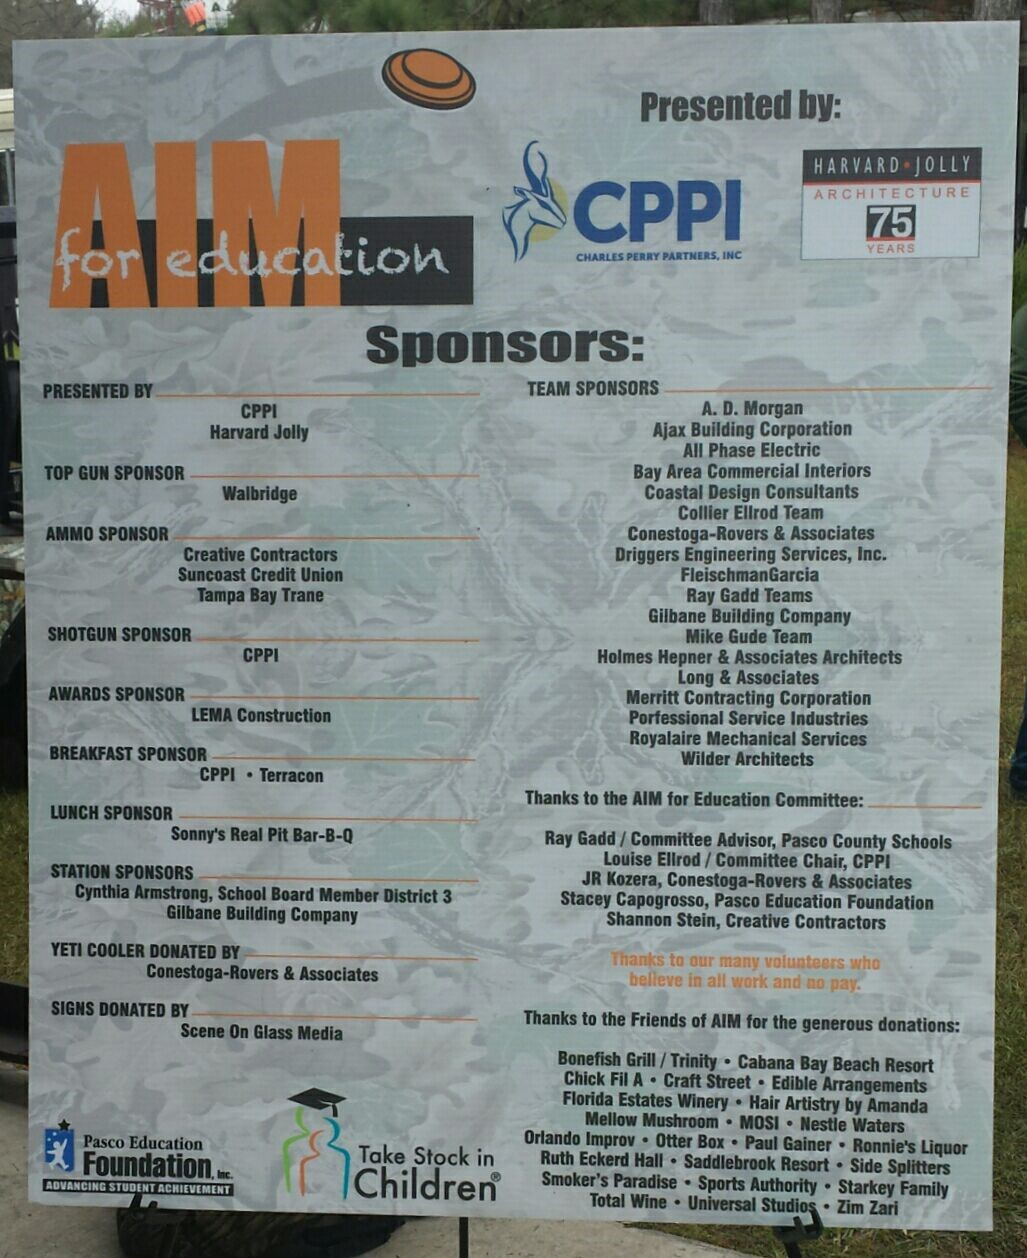 LEMA Construction recognized as one of the proud sponsors of Pasco County AIM for Education